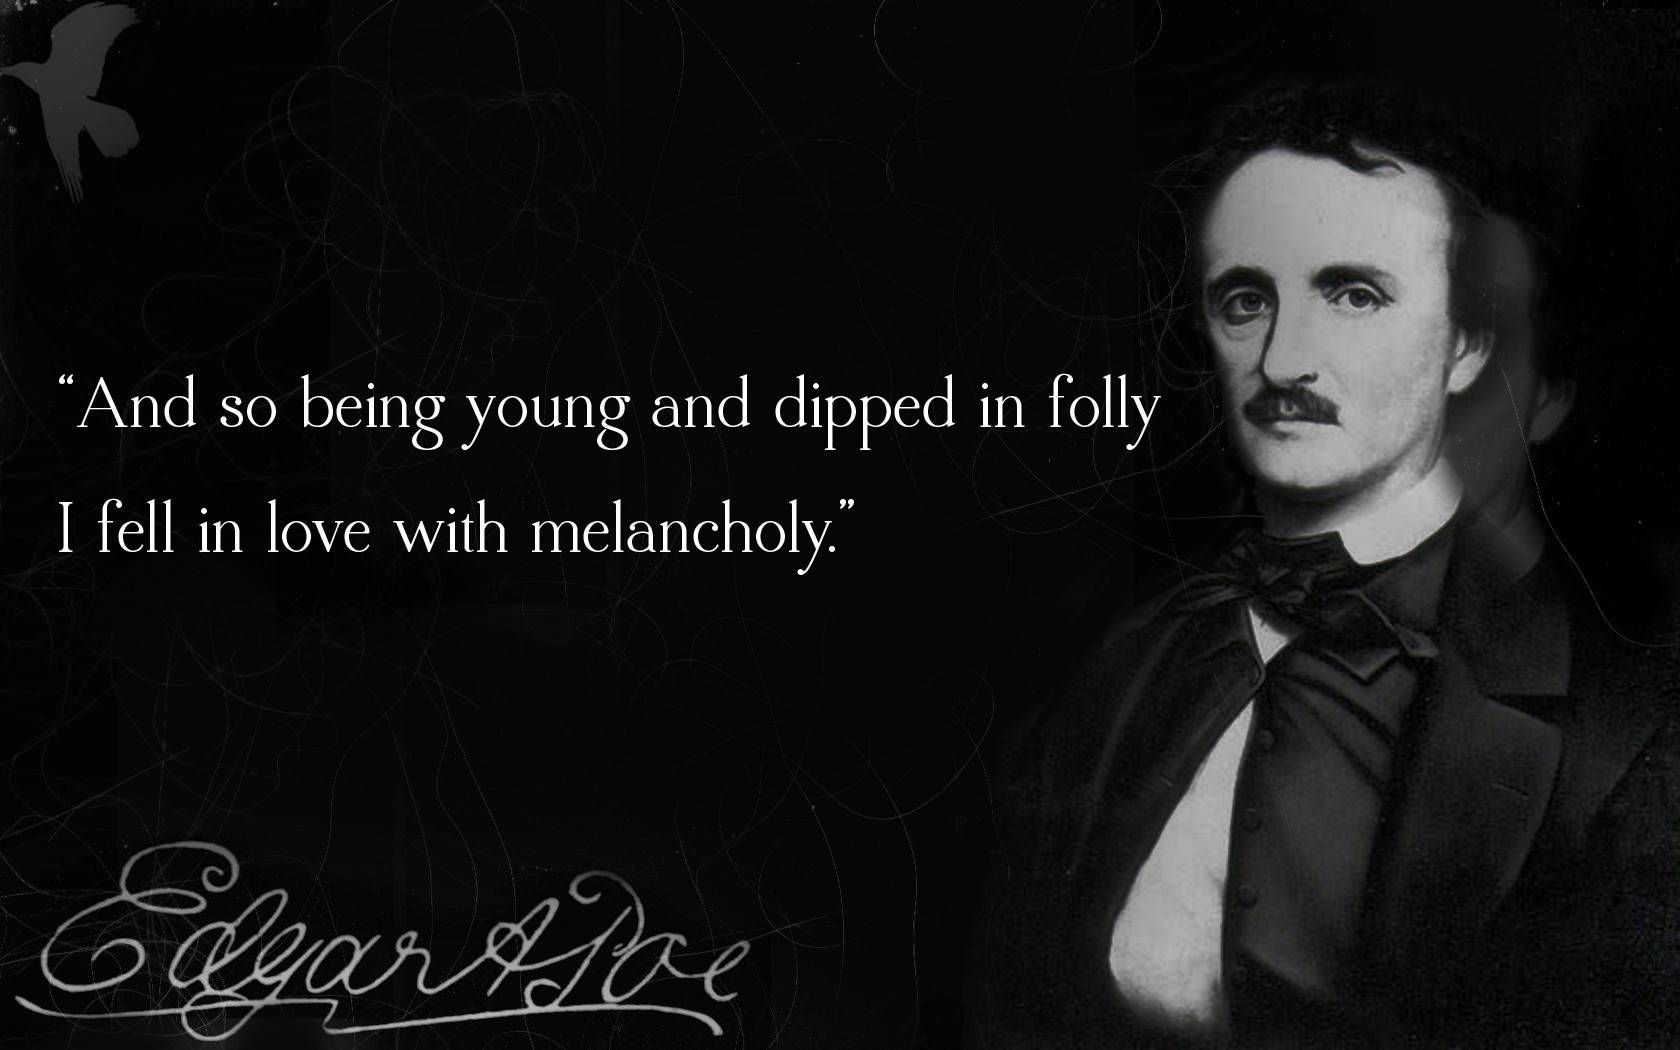 Edgar Allan Poe Love Quotes Edgar Allan Poe  Quotes  Pinterest  A Love A Child And He Is